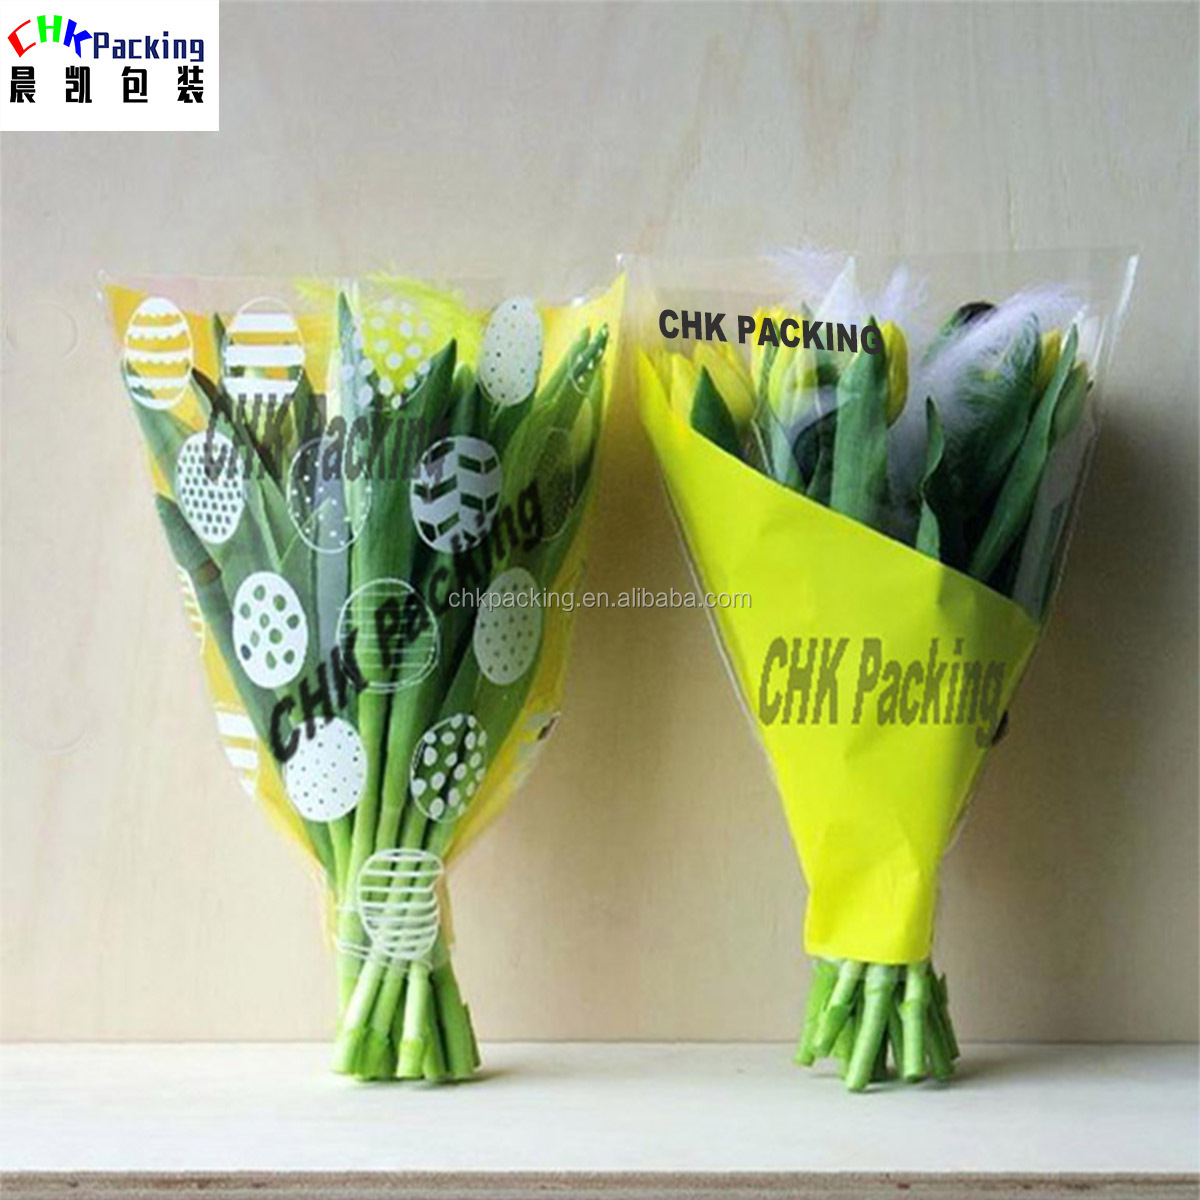 PLA  BOPP CPP printed plastic sleeve for cut flower , plastic Sleeves For pot plant PLA  BOPP CPP printed plastic sleeve for cut flower , plastic Sleeves For pot plant